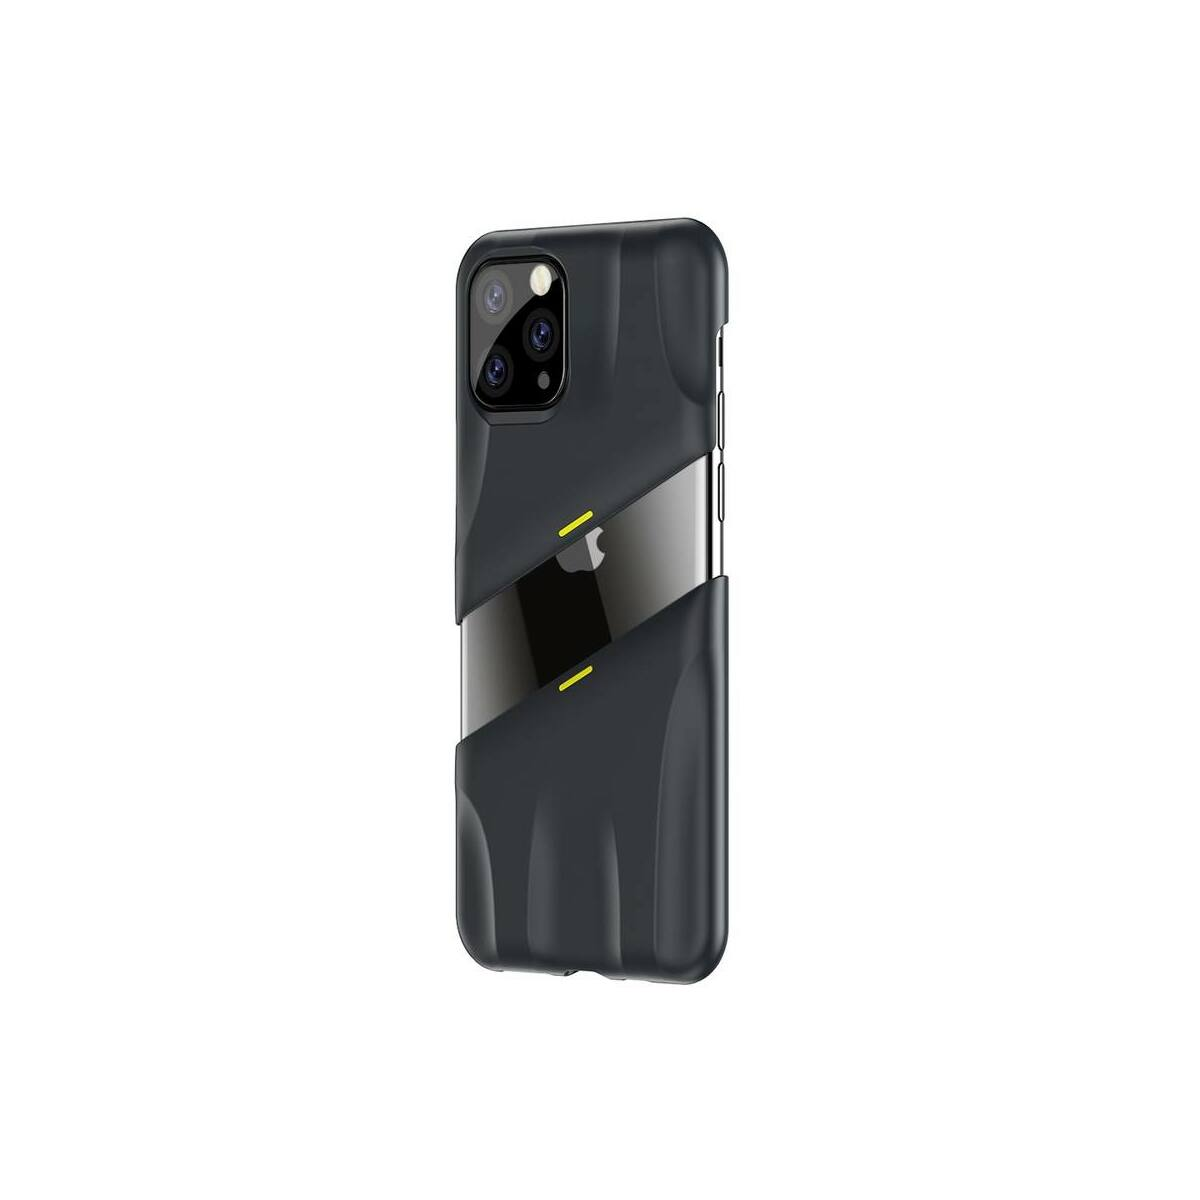 Baseus iPhone 11 Pro tok, Lets go Airflow Cooling, szürke/citrom (WIAPIPH58S-GMGY)